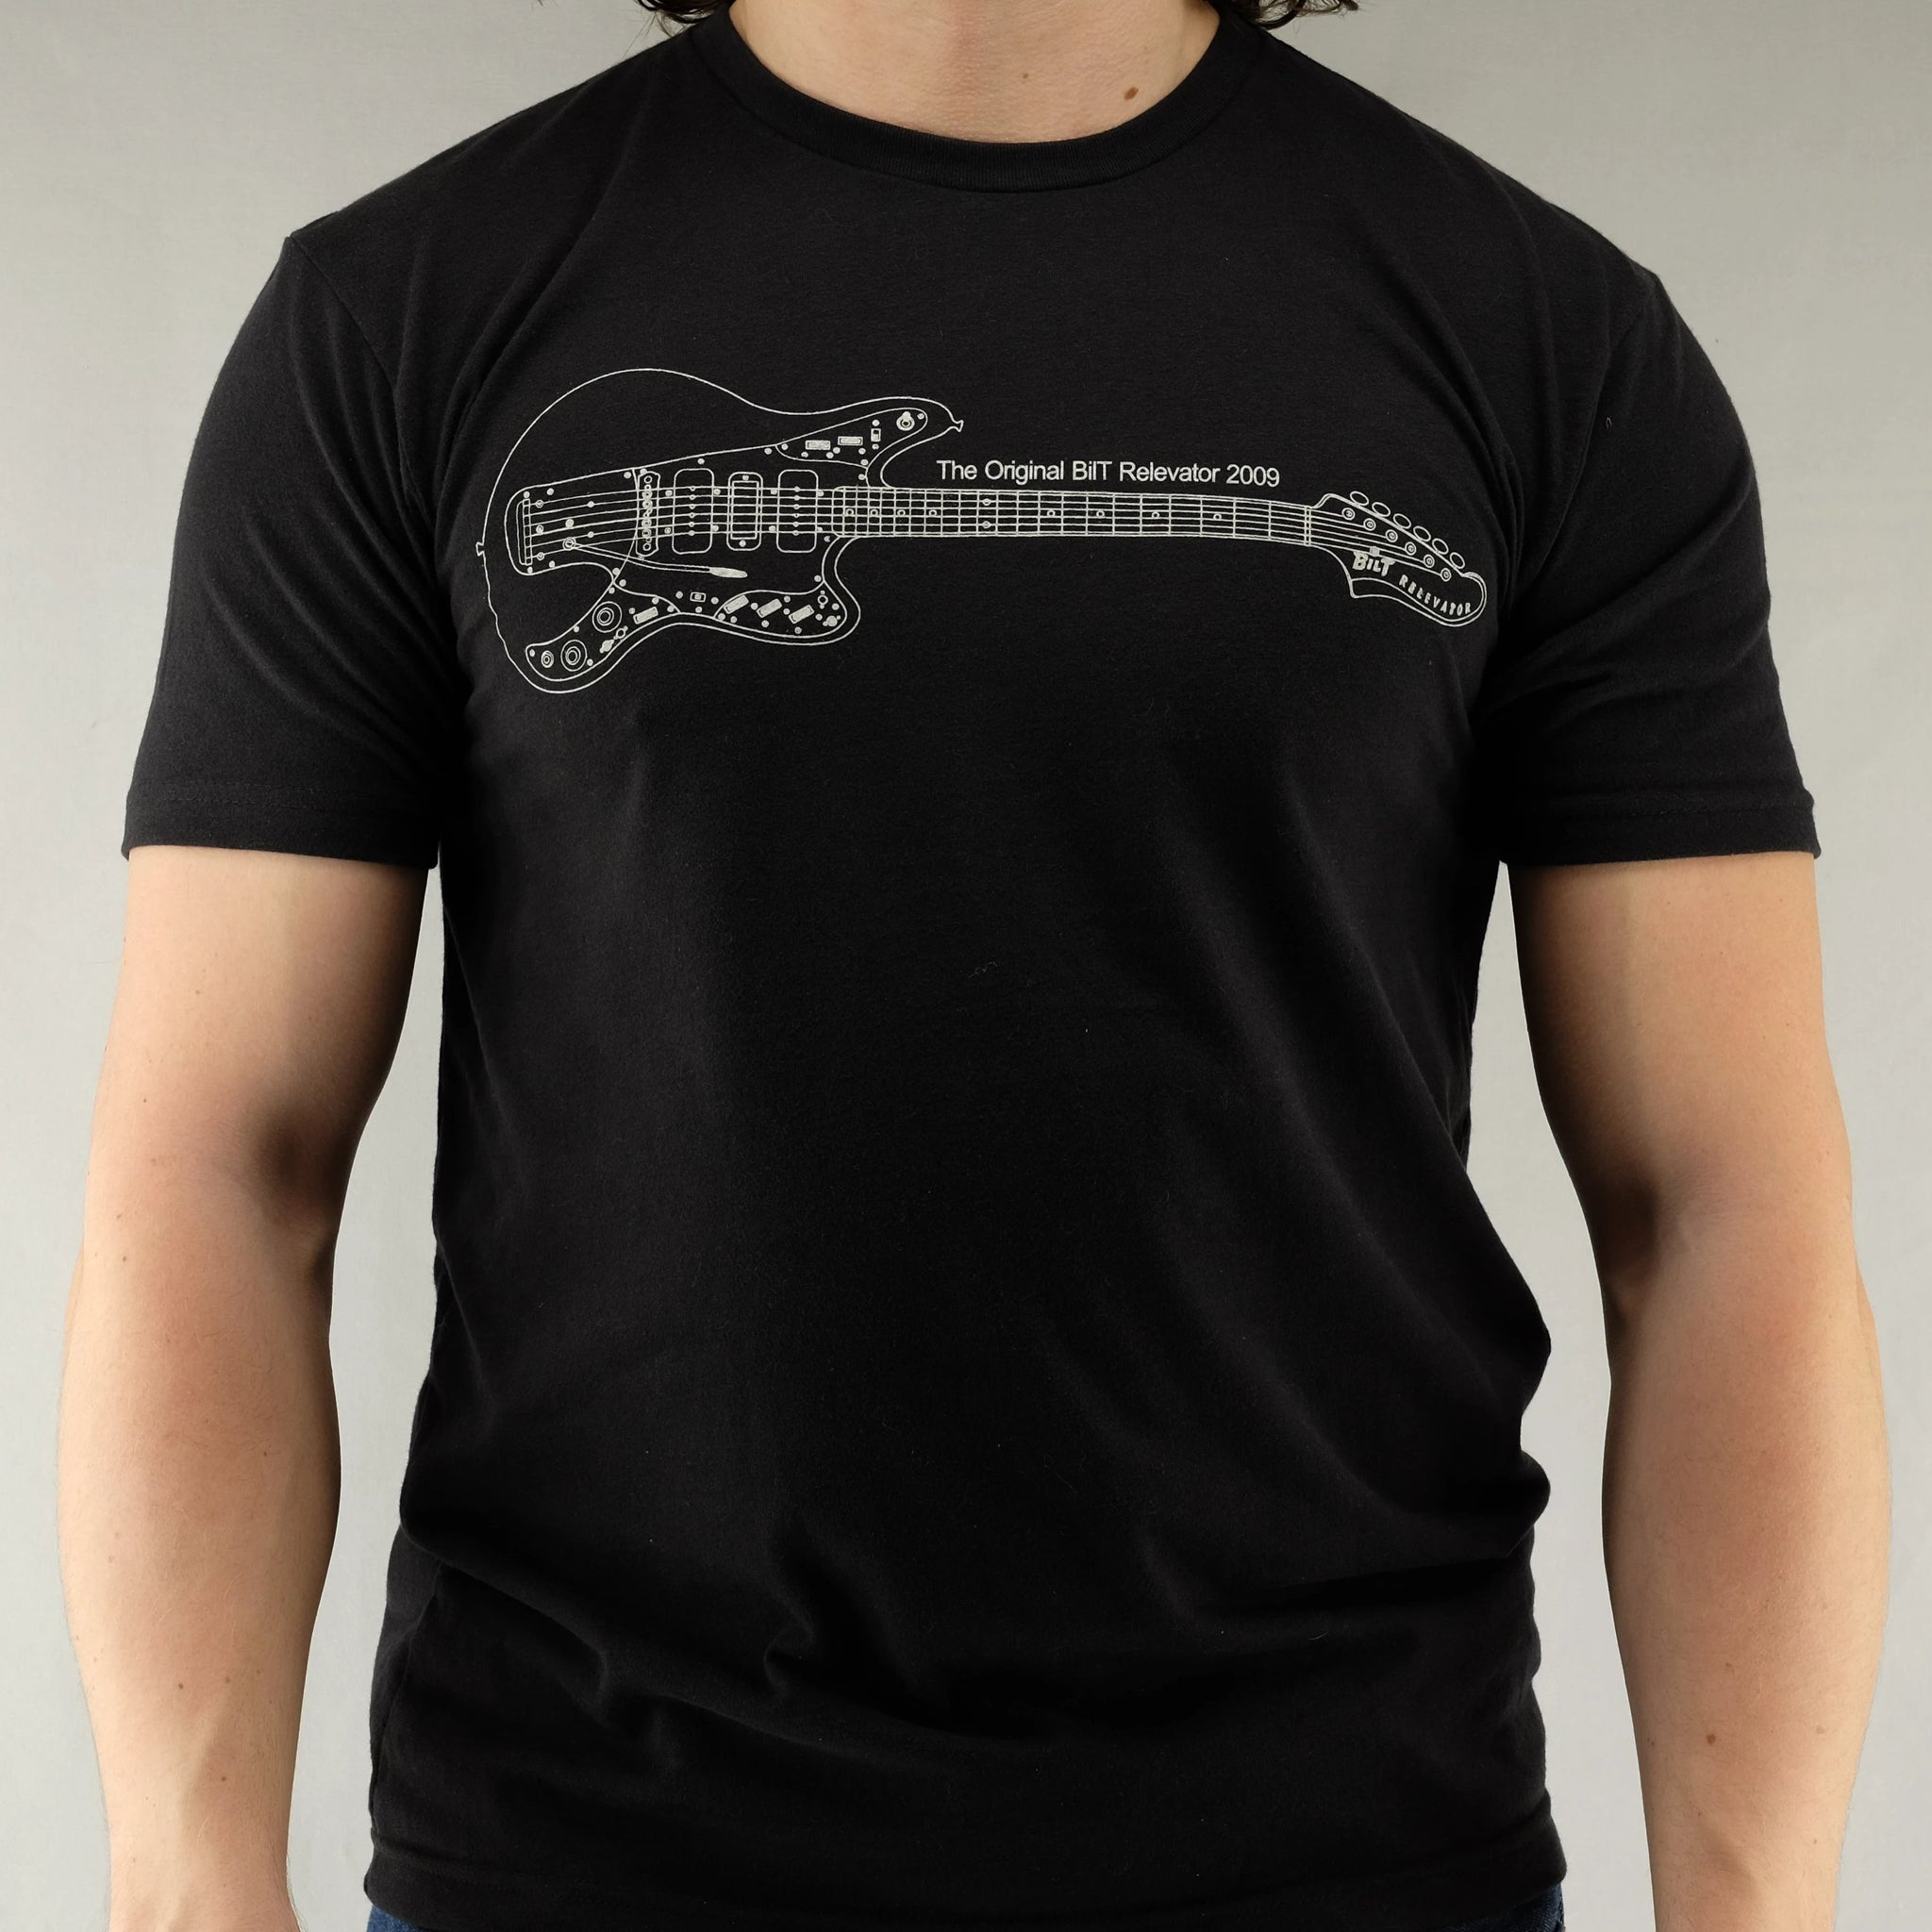 Original Relevator T-Shirt, Black